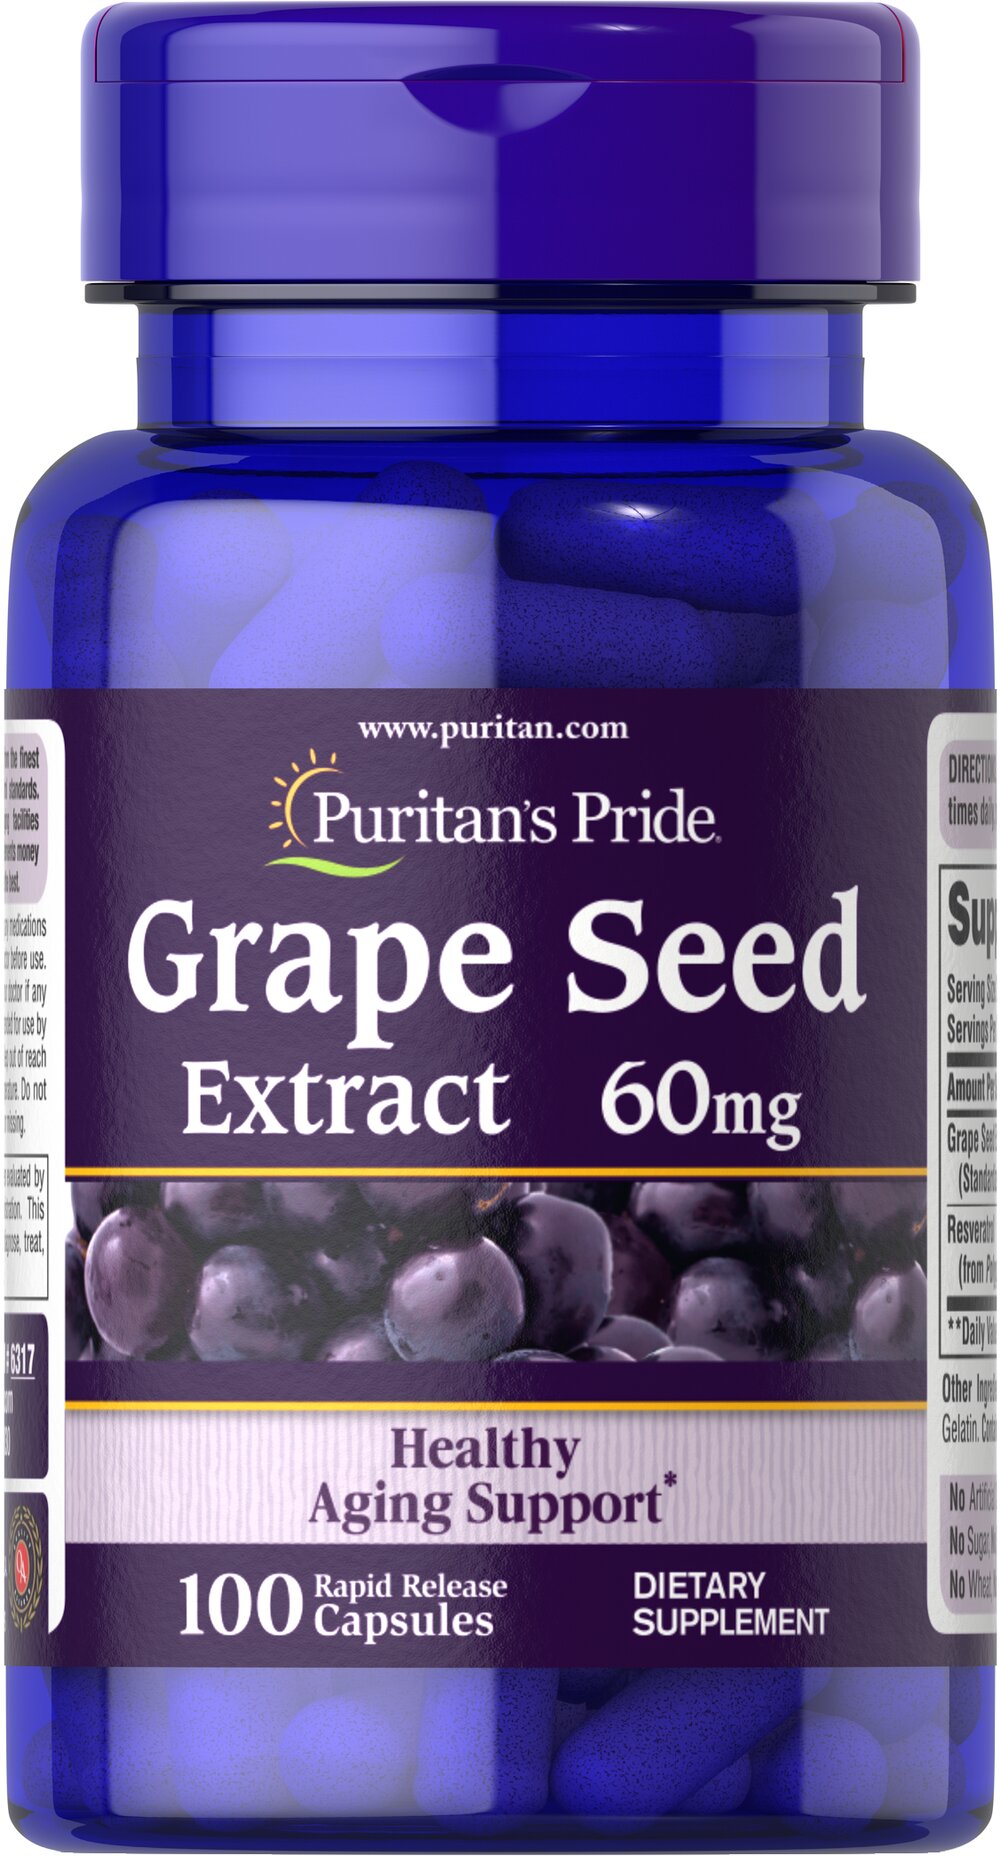 Resveratrol/Grape Extract 60 mg <p>Our <b>Grape Extract</b> contains natural extracts of both the skin and seeds of the grape. This product contains flavonoid polyphenols and <b>resveratrol, the beneficial substance found in red wine</b>.** Grape Extract has been shown to help support heart health.**  Supplementing with Grape Extract promotes antioxidant support  by  helping to fight cell-damaging free radicals**.</p>   100 Capsules 60 mg $19.99